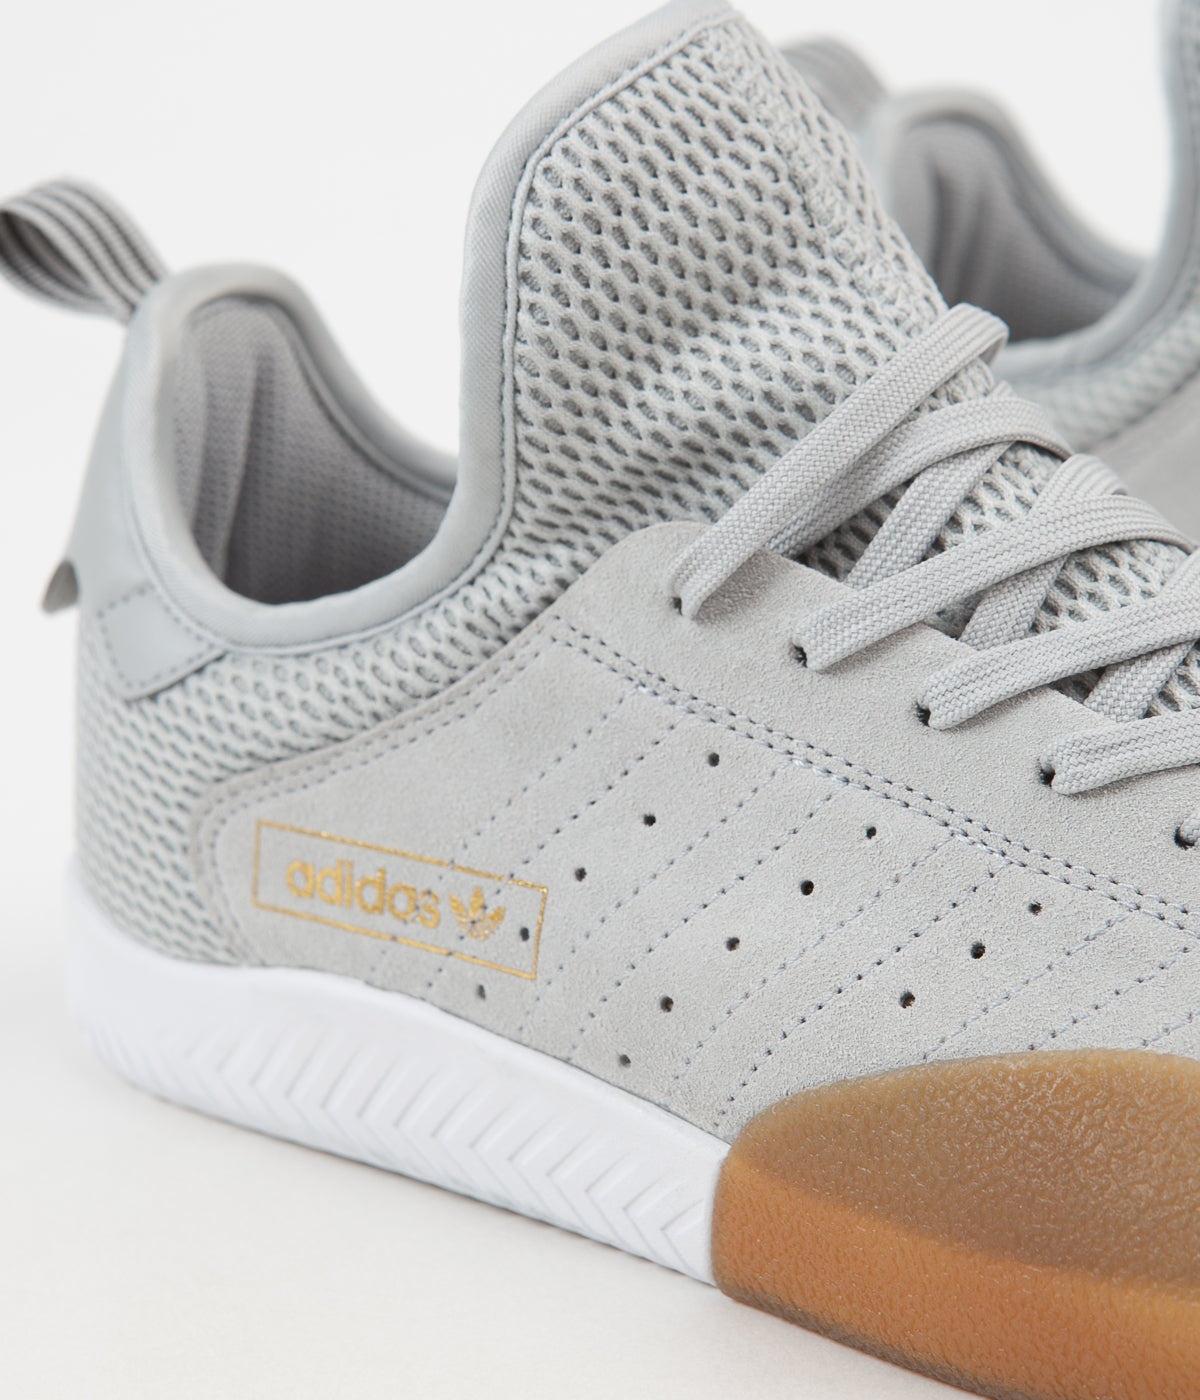 Adidas 3ST.003 Shoes - Clear Onix / Grey Five / FTW White